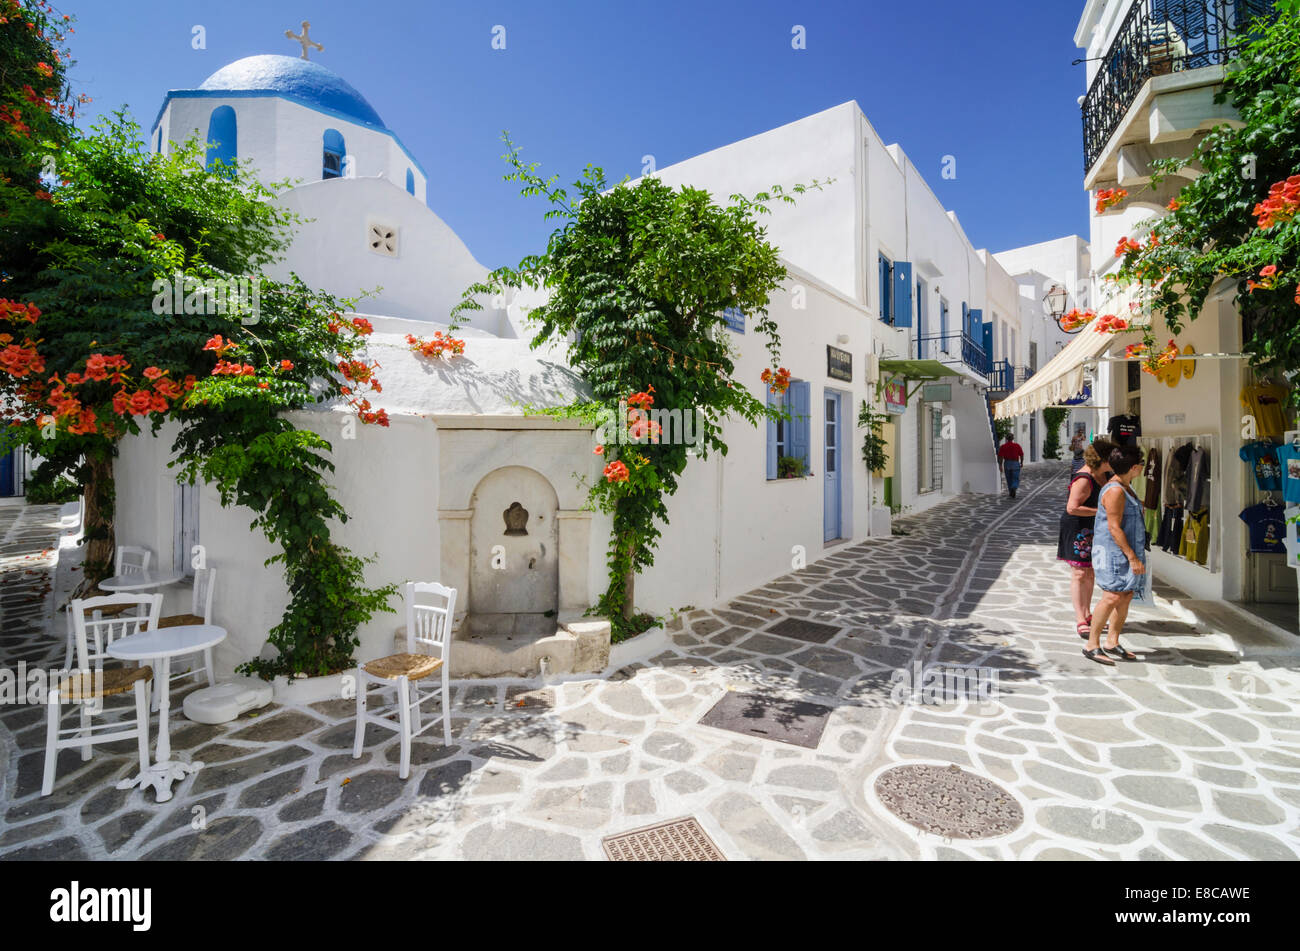 Greek water fountain and blue domed church in the whitewashed streets of Parikia Town on the island of Paros, Cyclades, - Stock Image